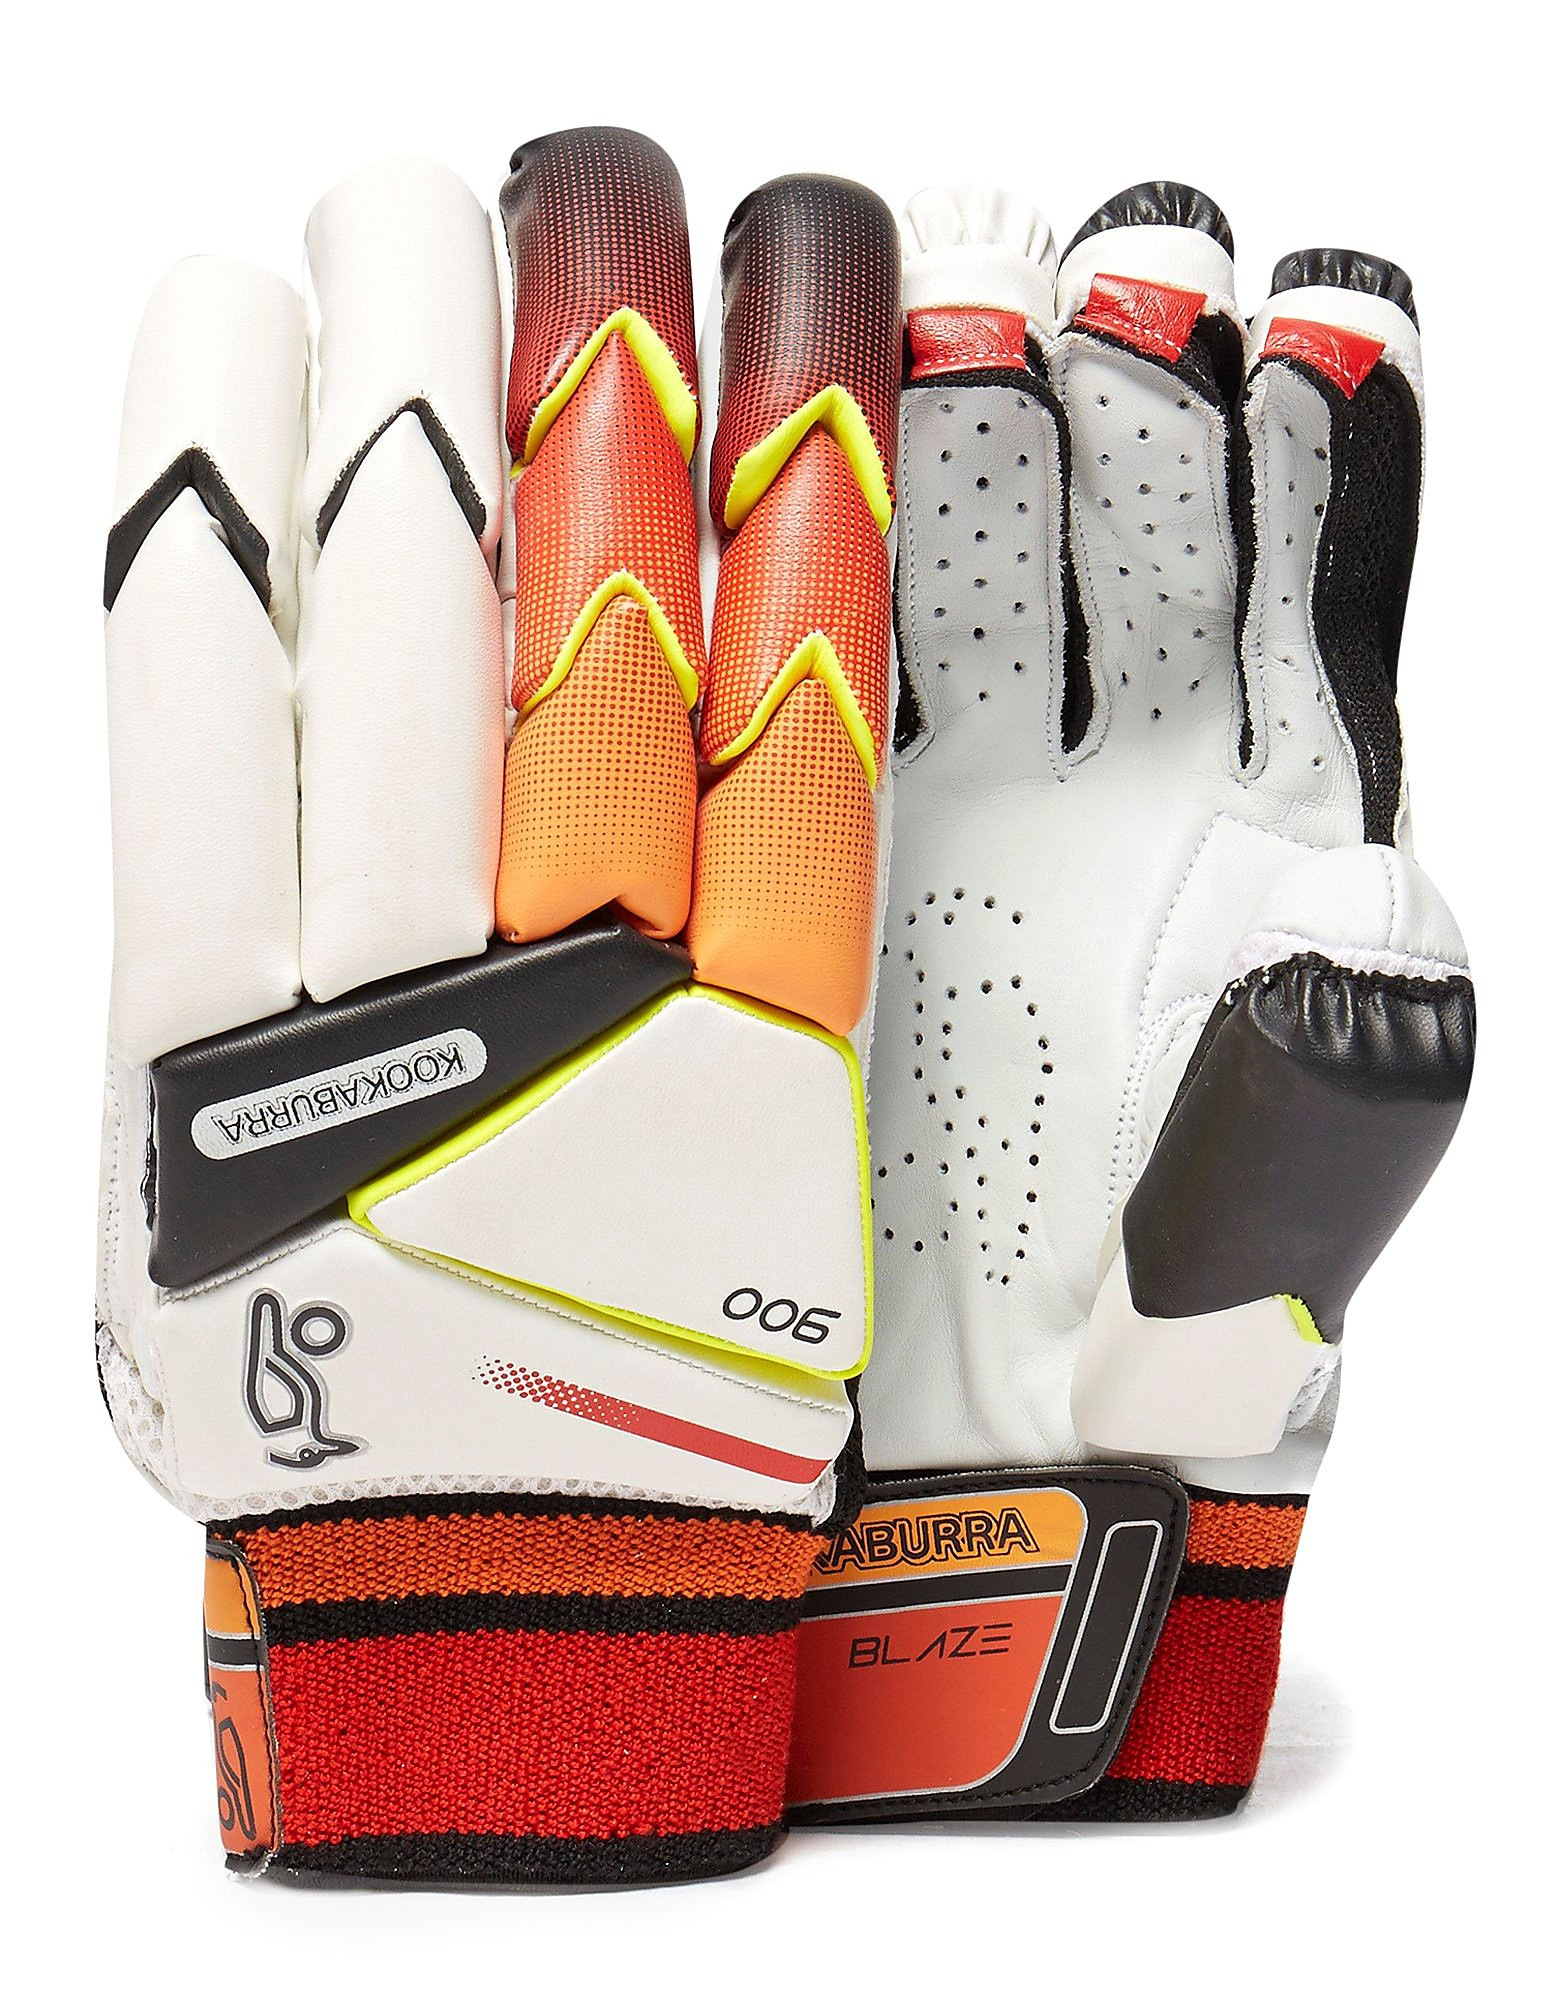 Kookaburra Blaze 900 Men's Batting Gloves